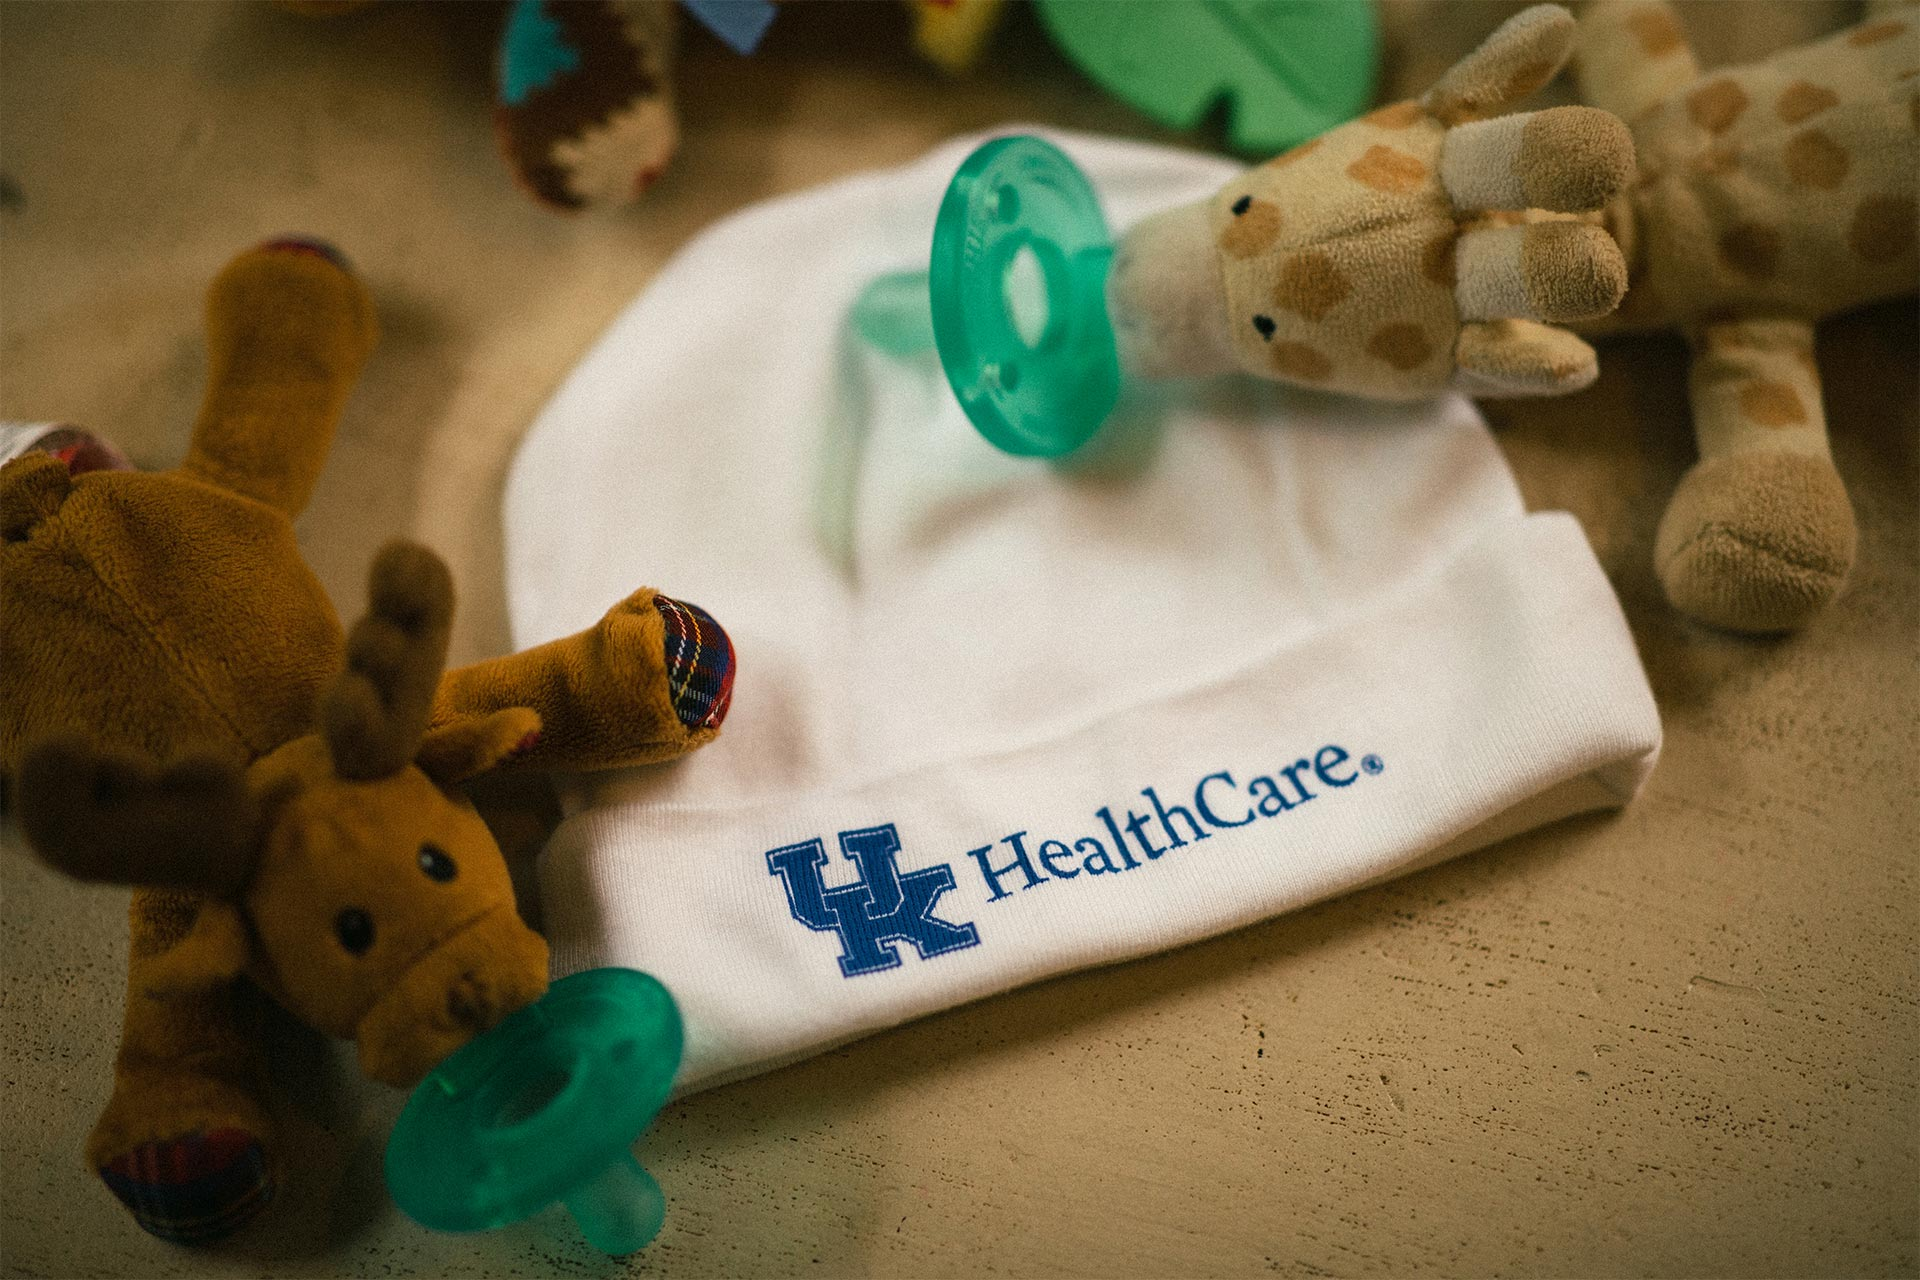 university of kentucky healthcare hat and childrens toys